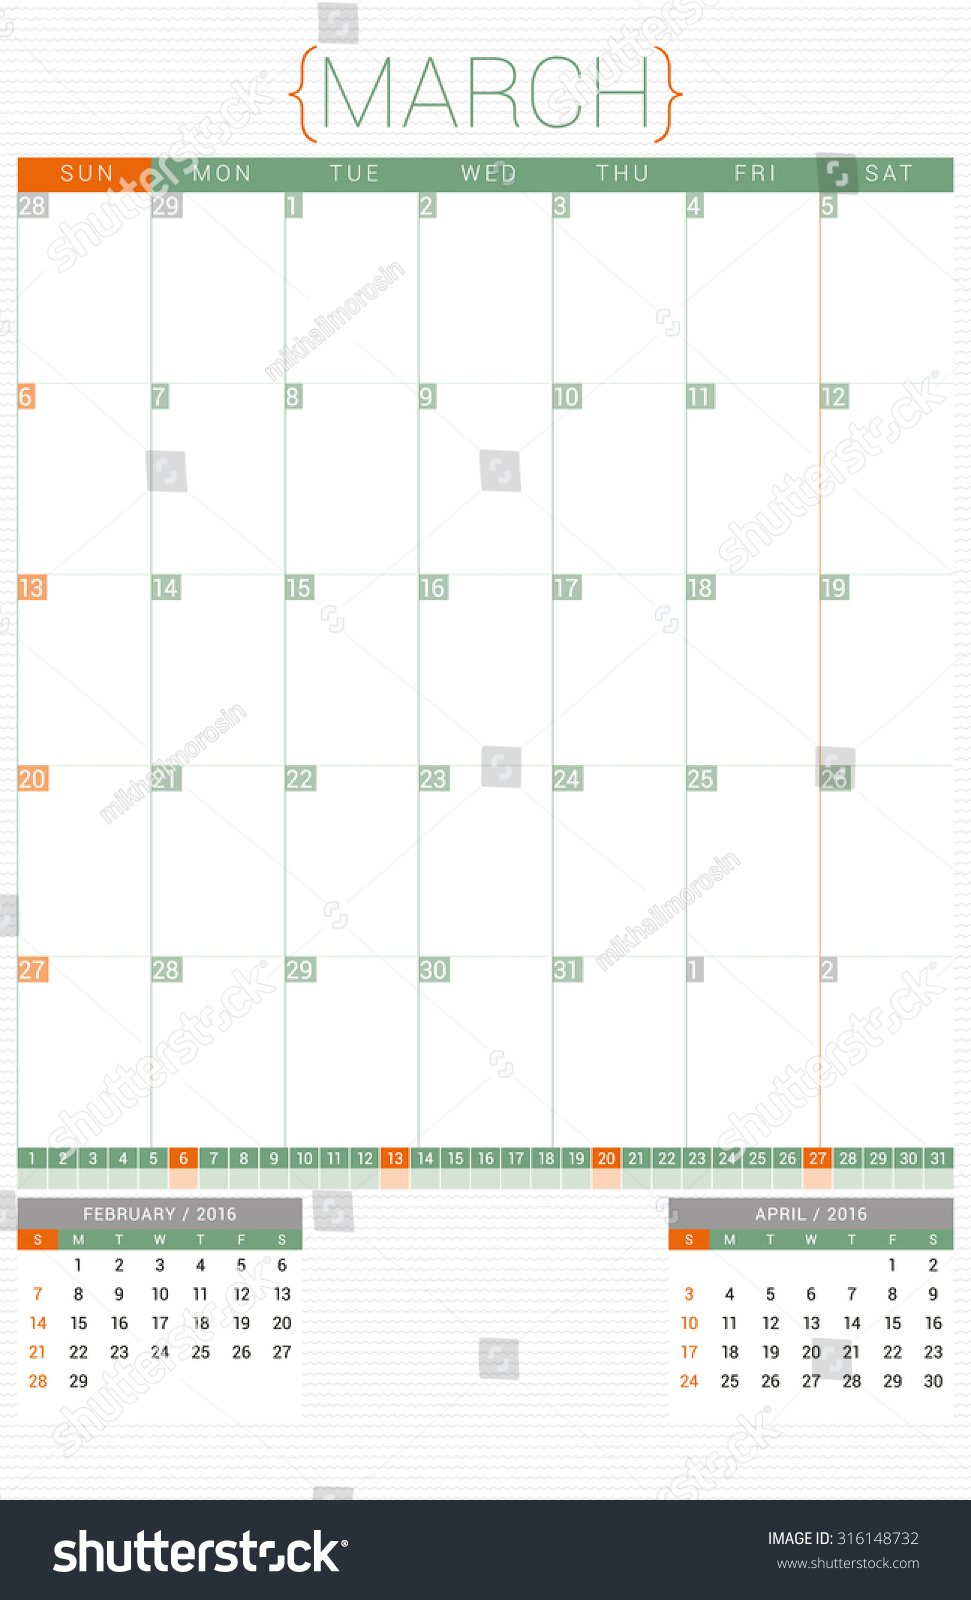 Planner 2016 Template from image.shutterstock.com